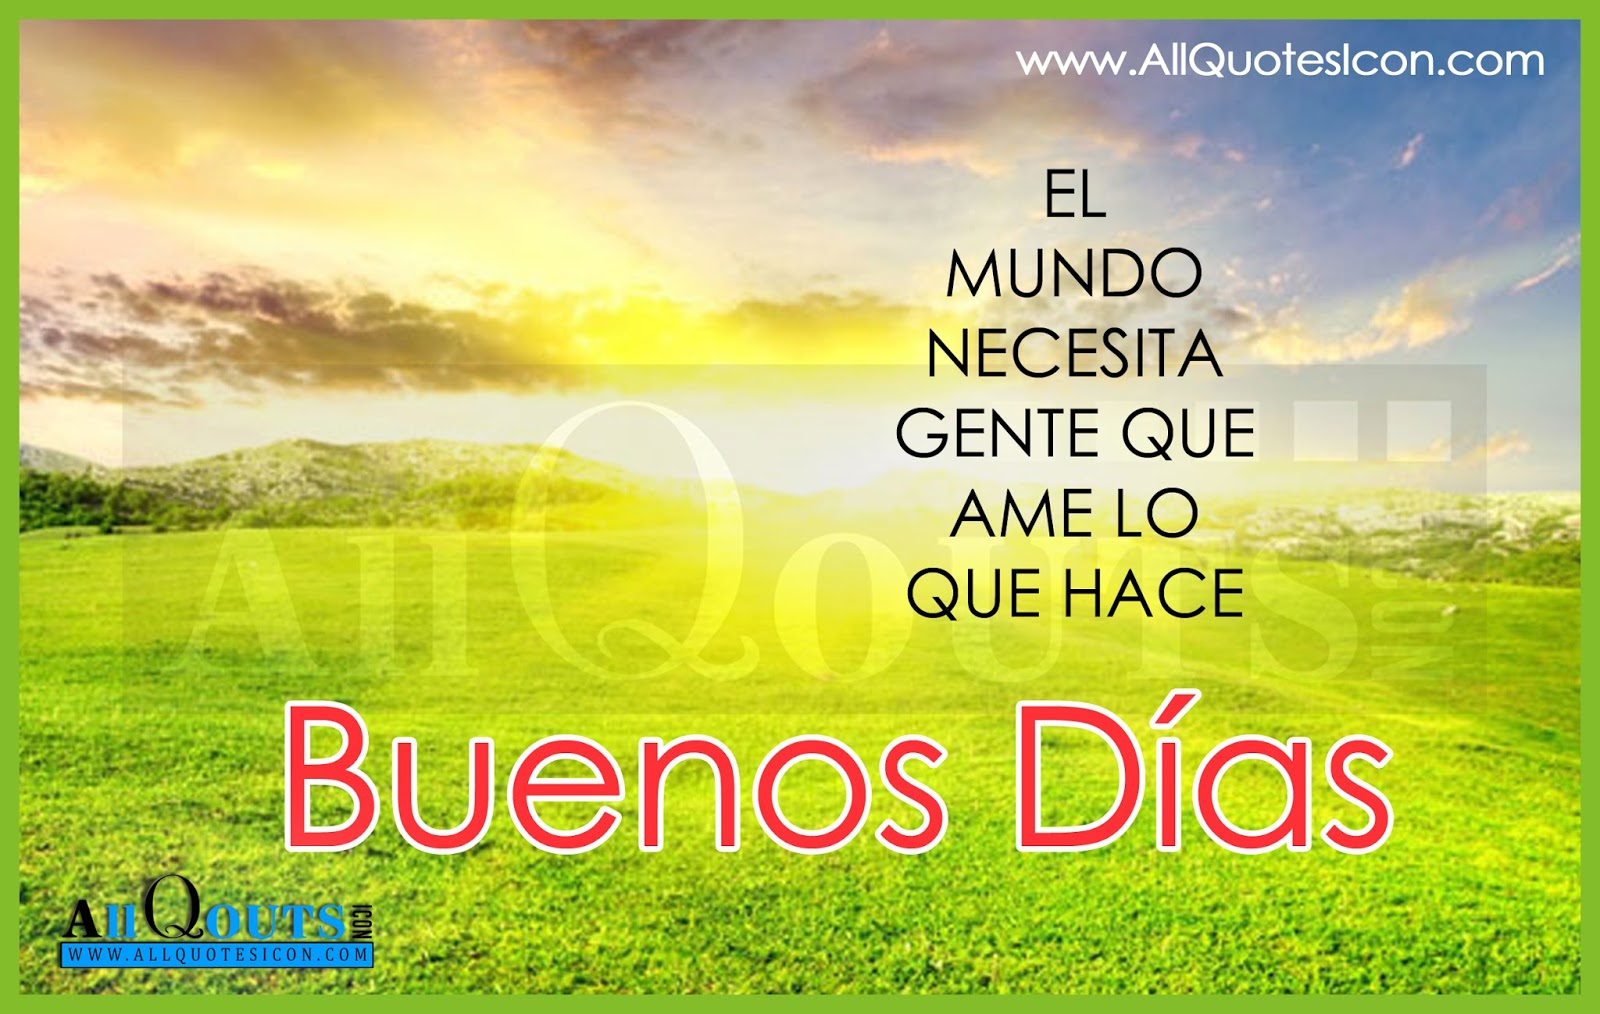 Good Morning In Spanish Is What : Spanish good morning wishes and quotes allquotesicon